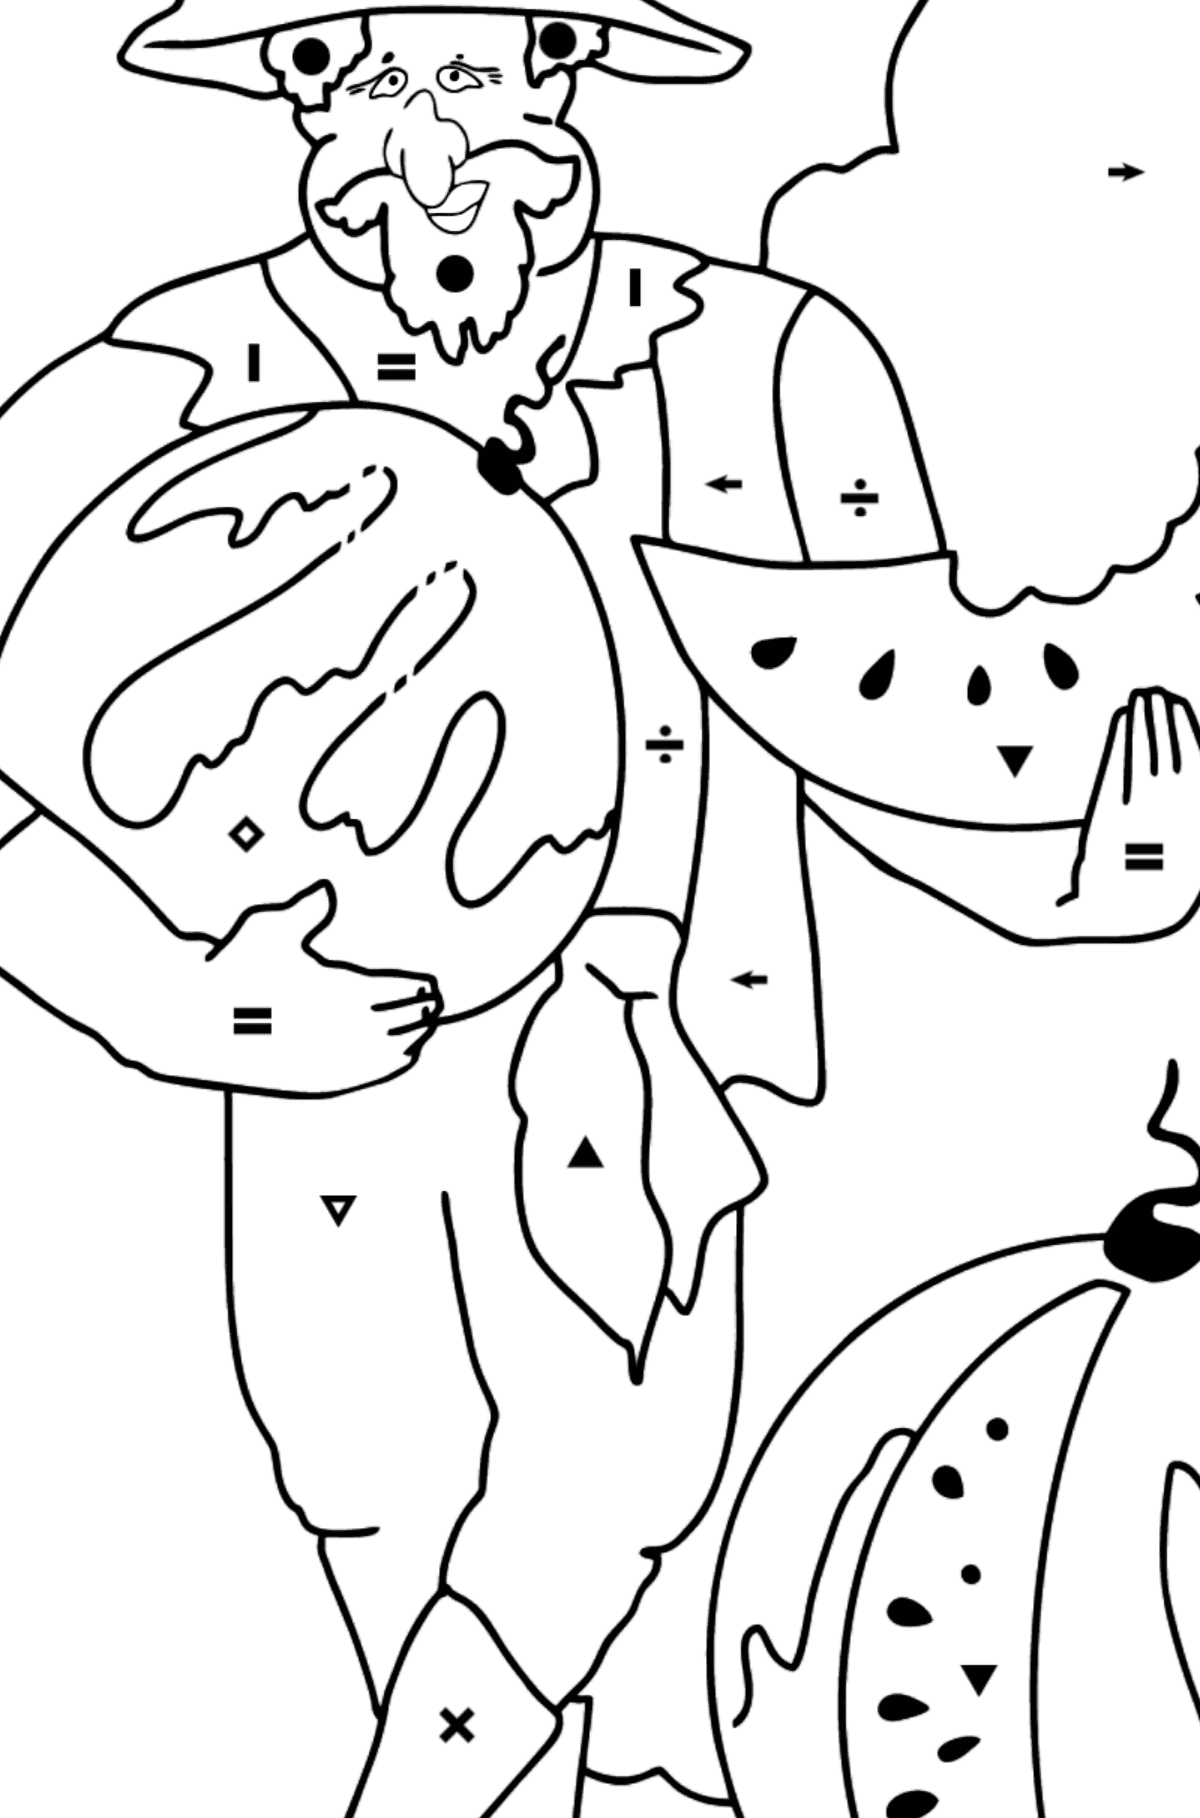 Coloring Page - A Pirate is Eating a Tasty Watermelon - Coloring by Symbols for Kids